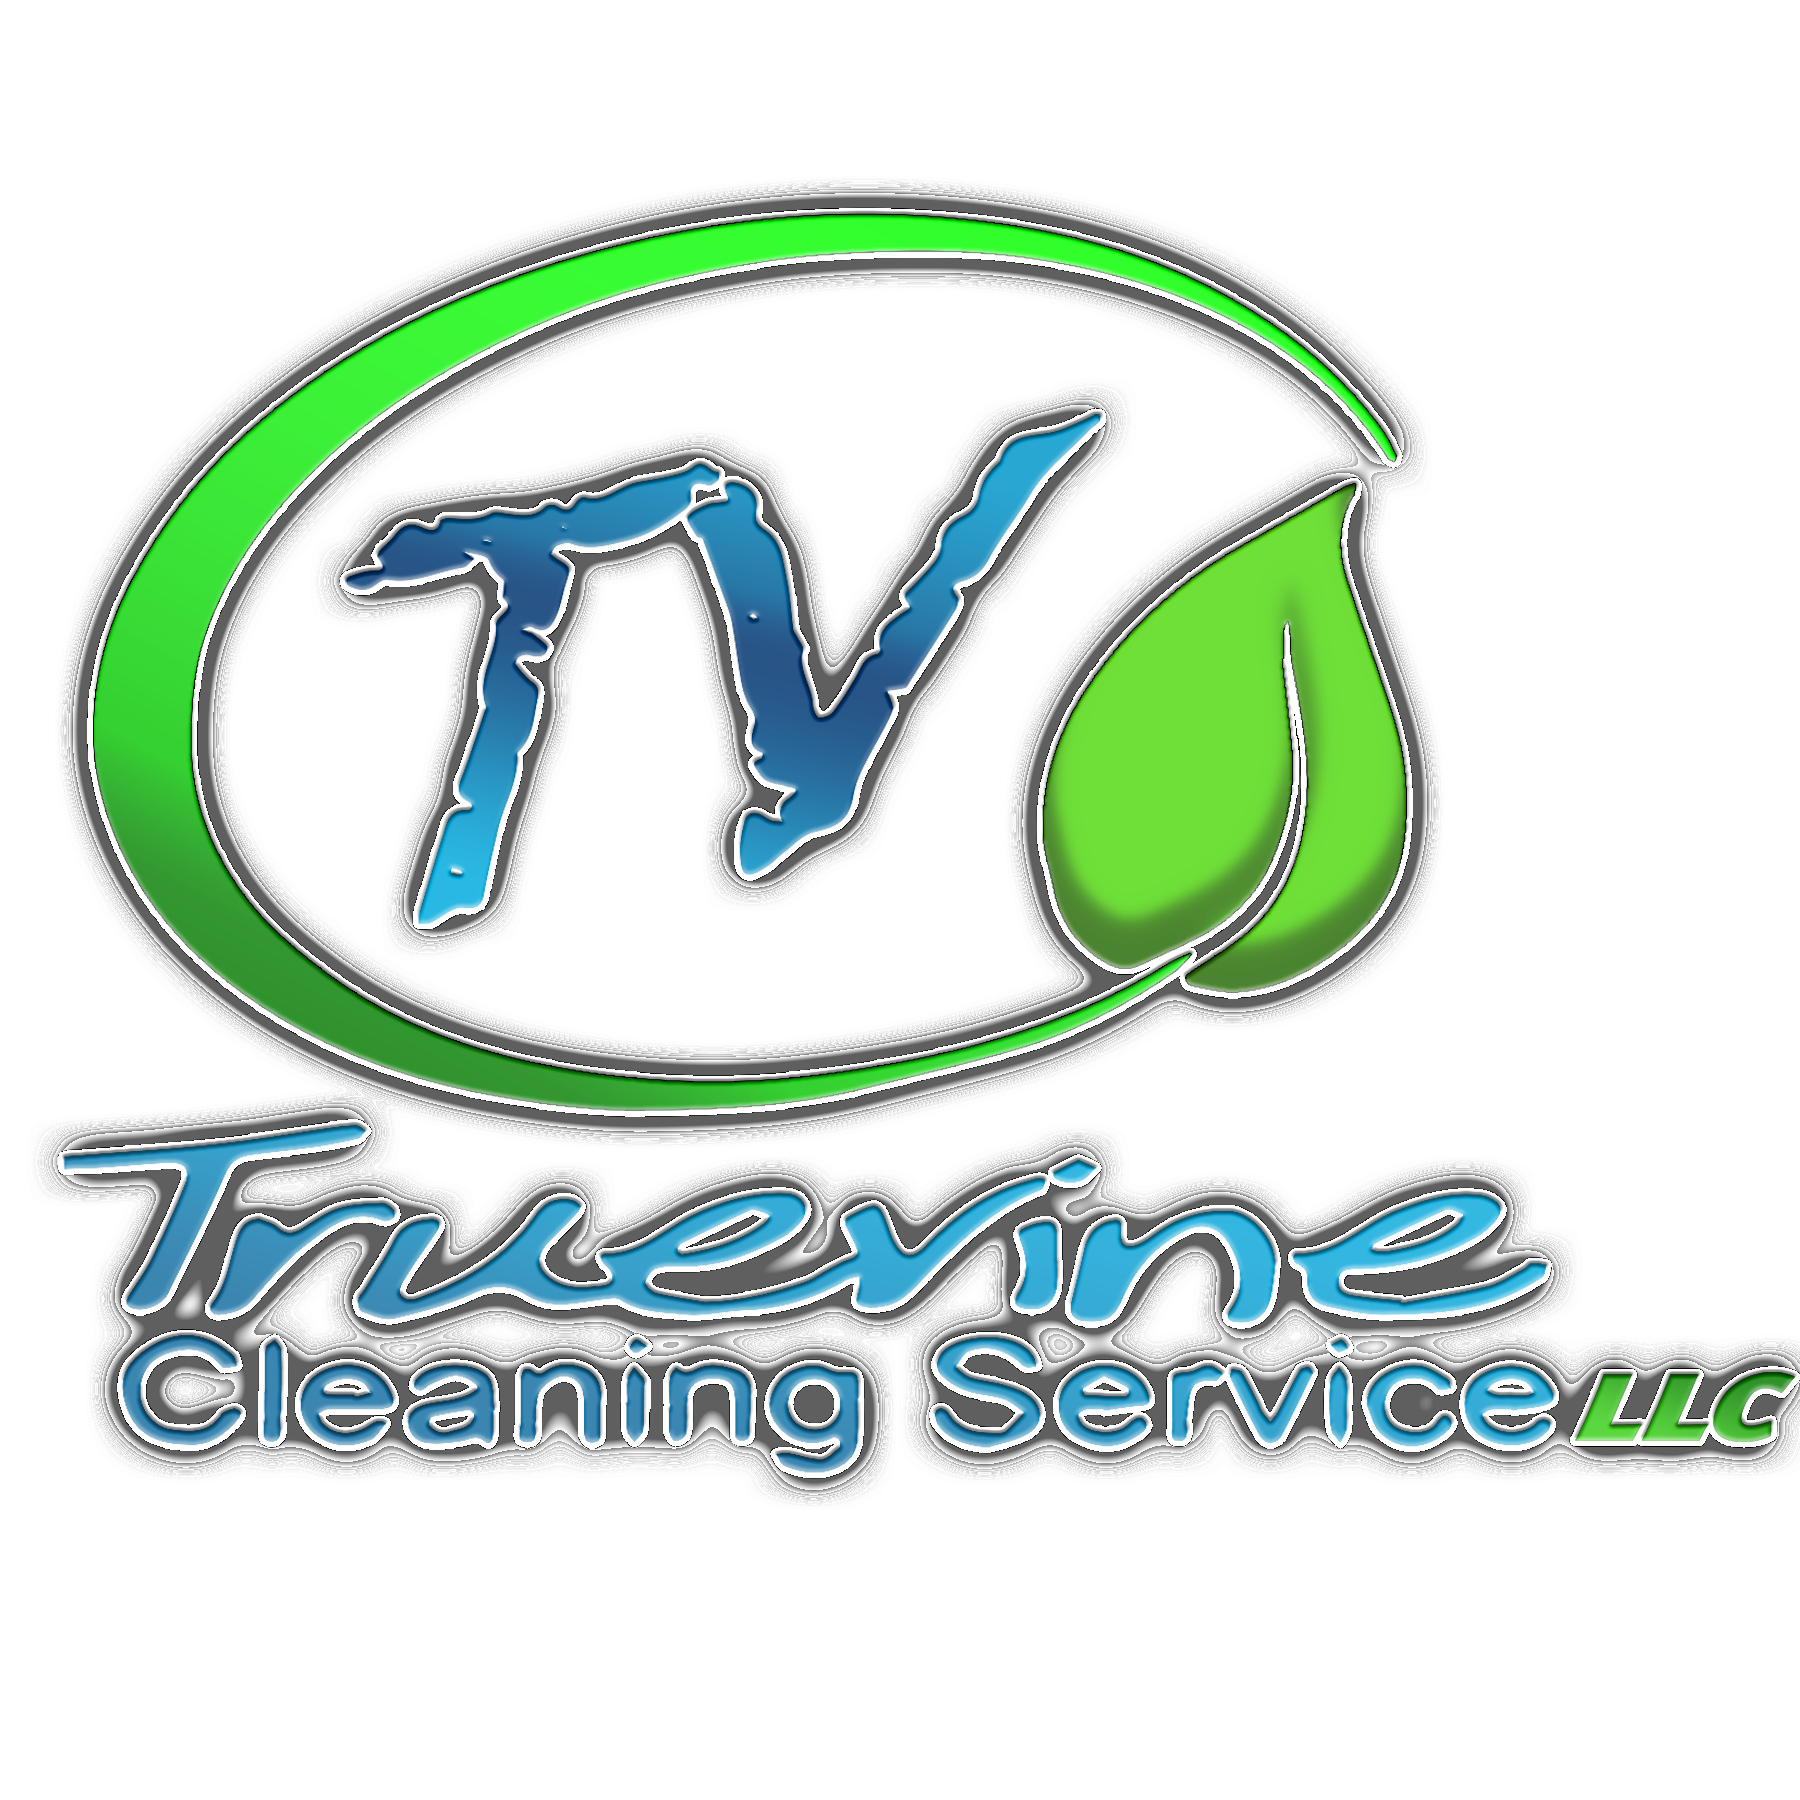 House cleaning, commercial cleaning, affordble cleaning, bedford, euless, hurst, southlake, grapevine, trophy club